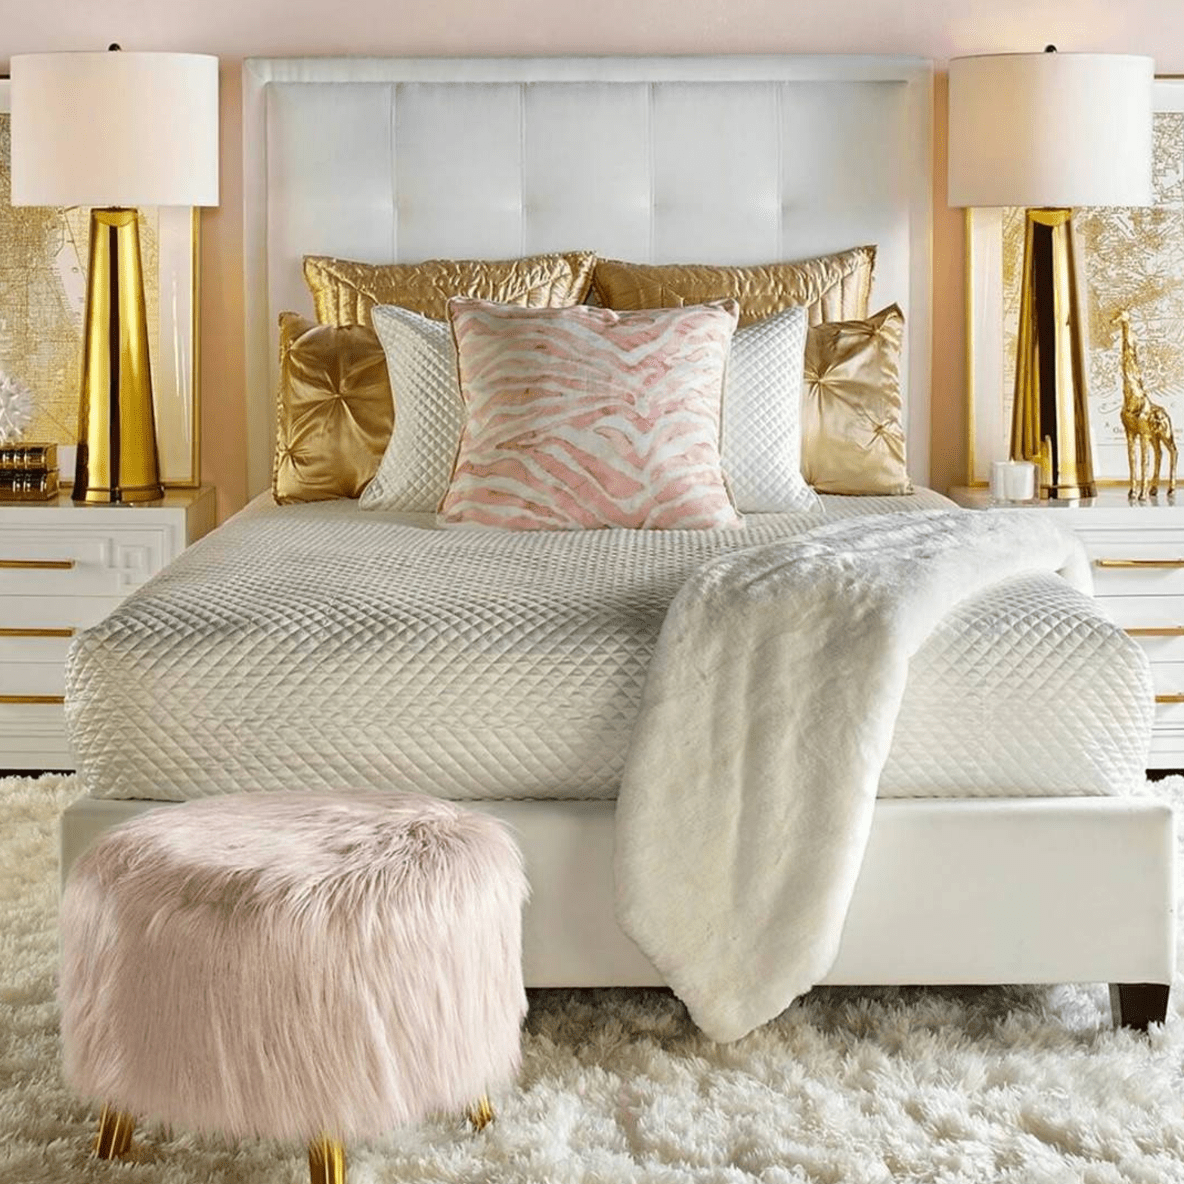 Pink and gold bedroom